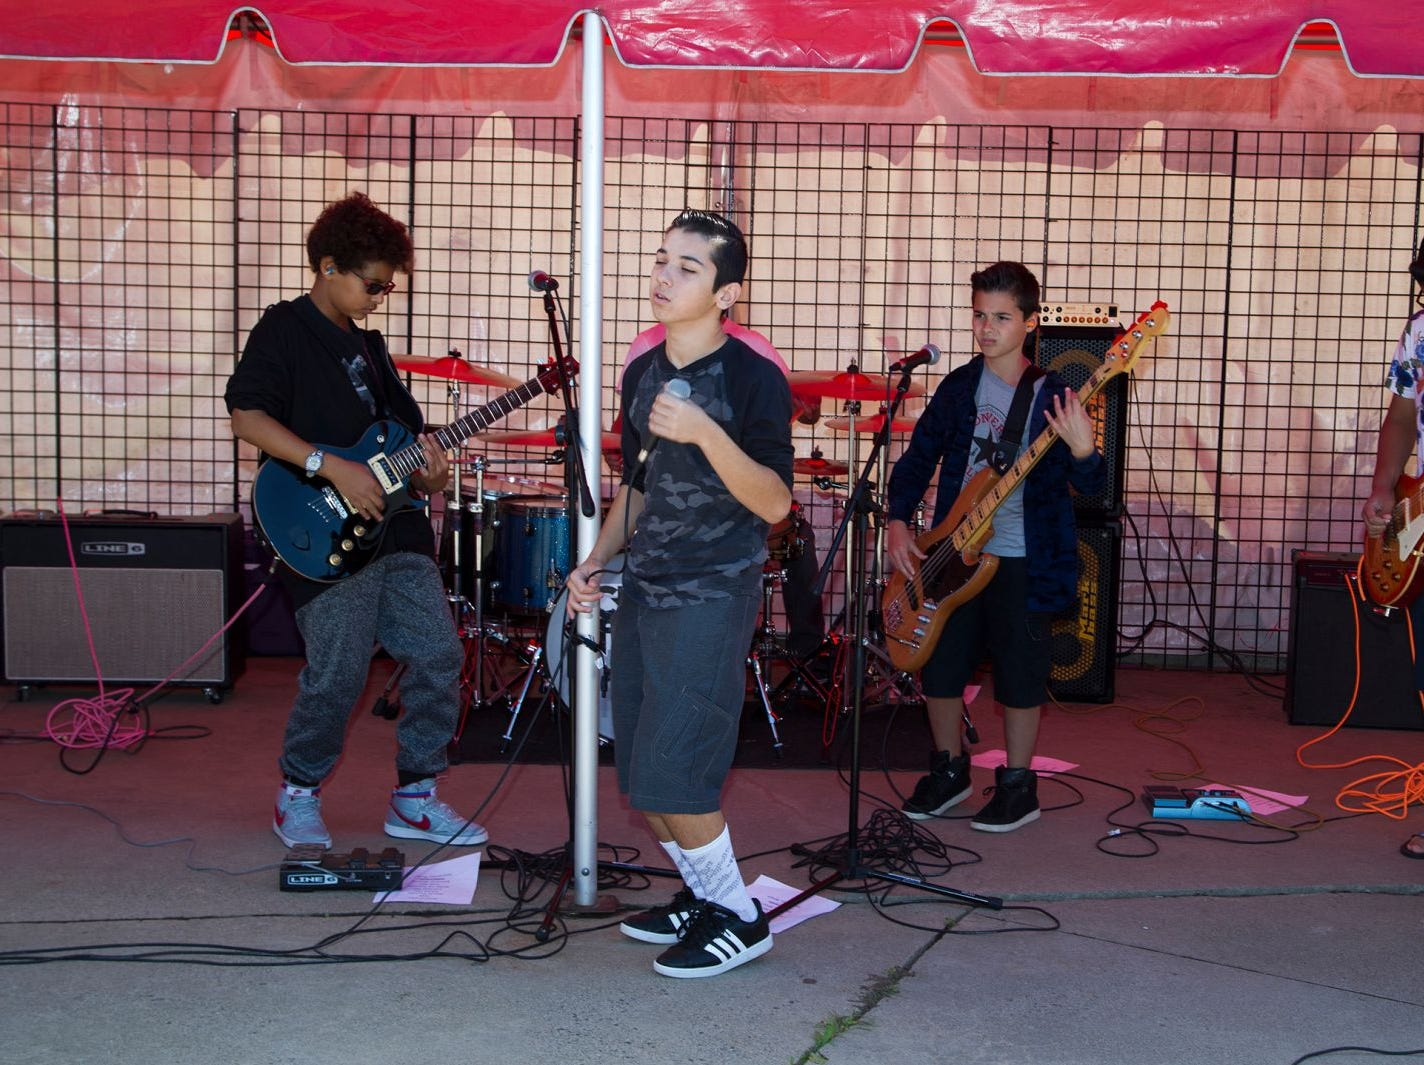 School of Rock Band. The second annual Food Truck & Craft Beer Festival at Yogi Berra Stadium in Little Falls.  09/29/2018